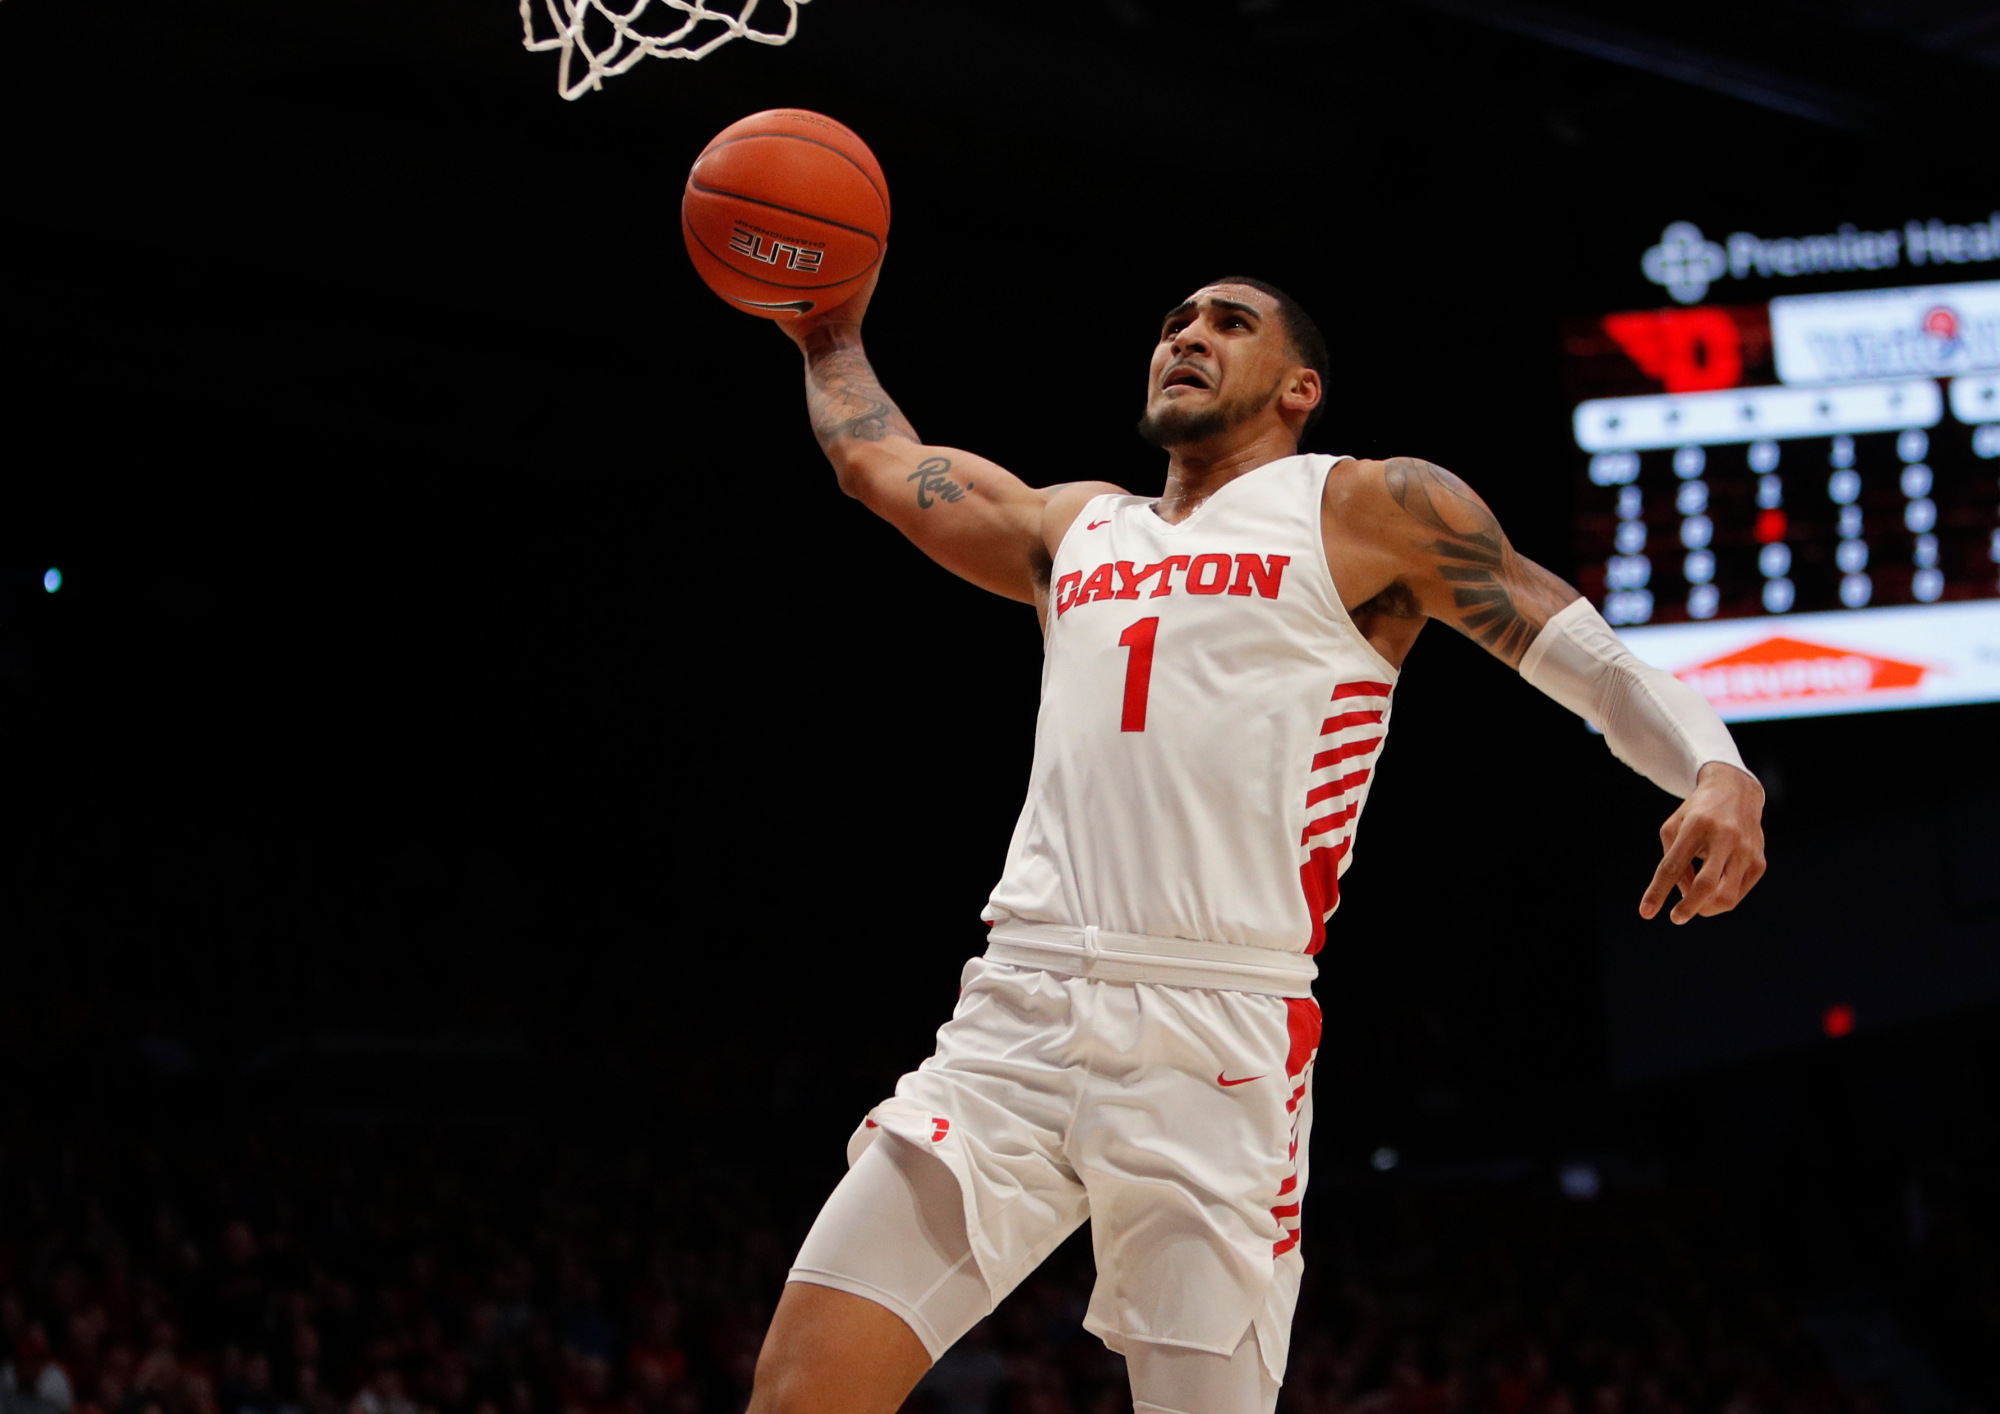 Feb 11, 2020; Dayton, Ohio, USA; Dayton Flyers forward Obi Toppin (1) dunks against the Rhode Island Rams during the first half at University of Dayton Arena.